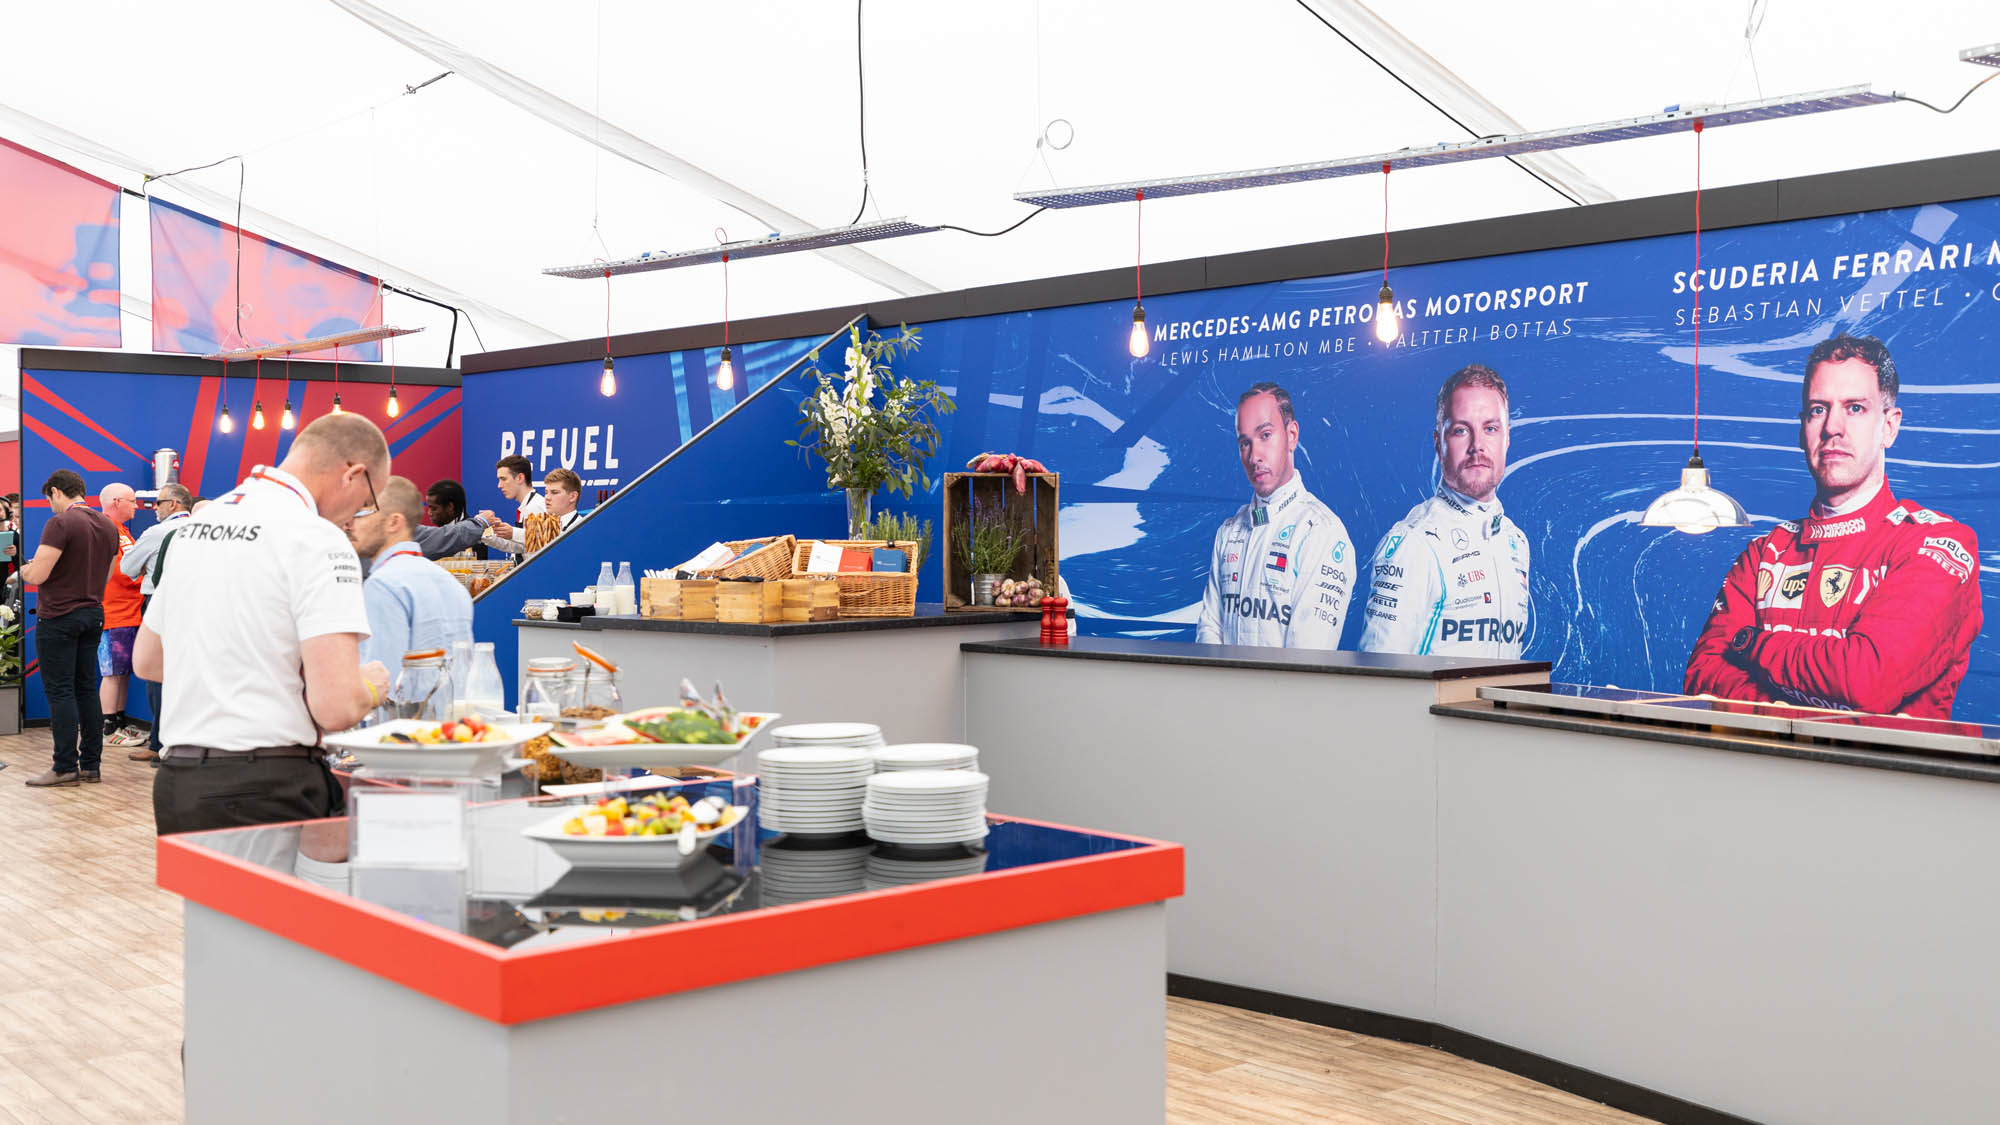 190720_Silverstone_2019_02_Drivers Lounge_Interior-6.jpg